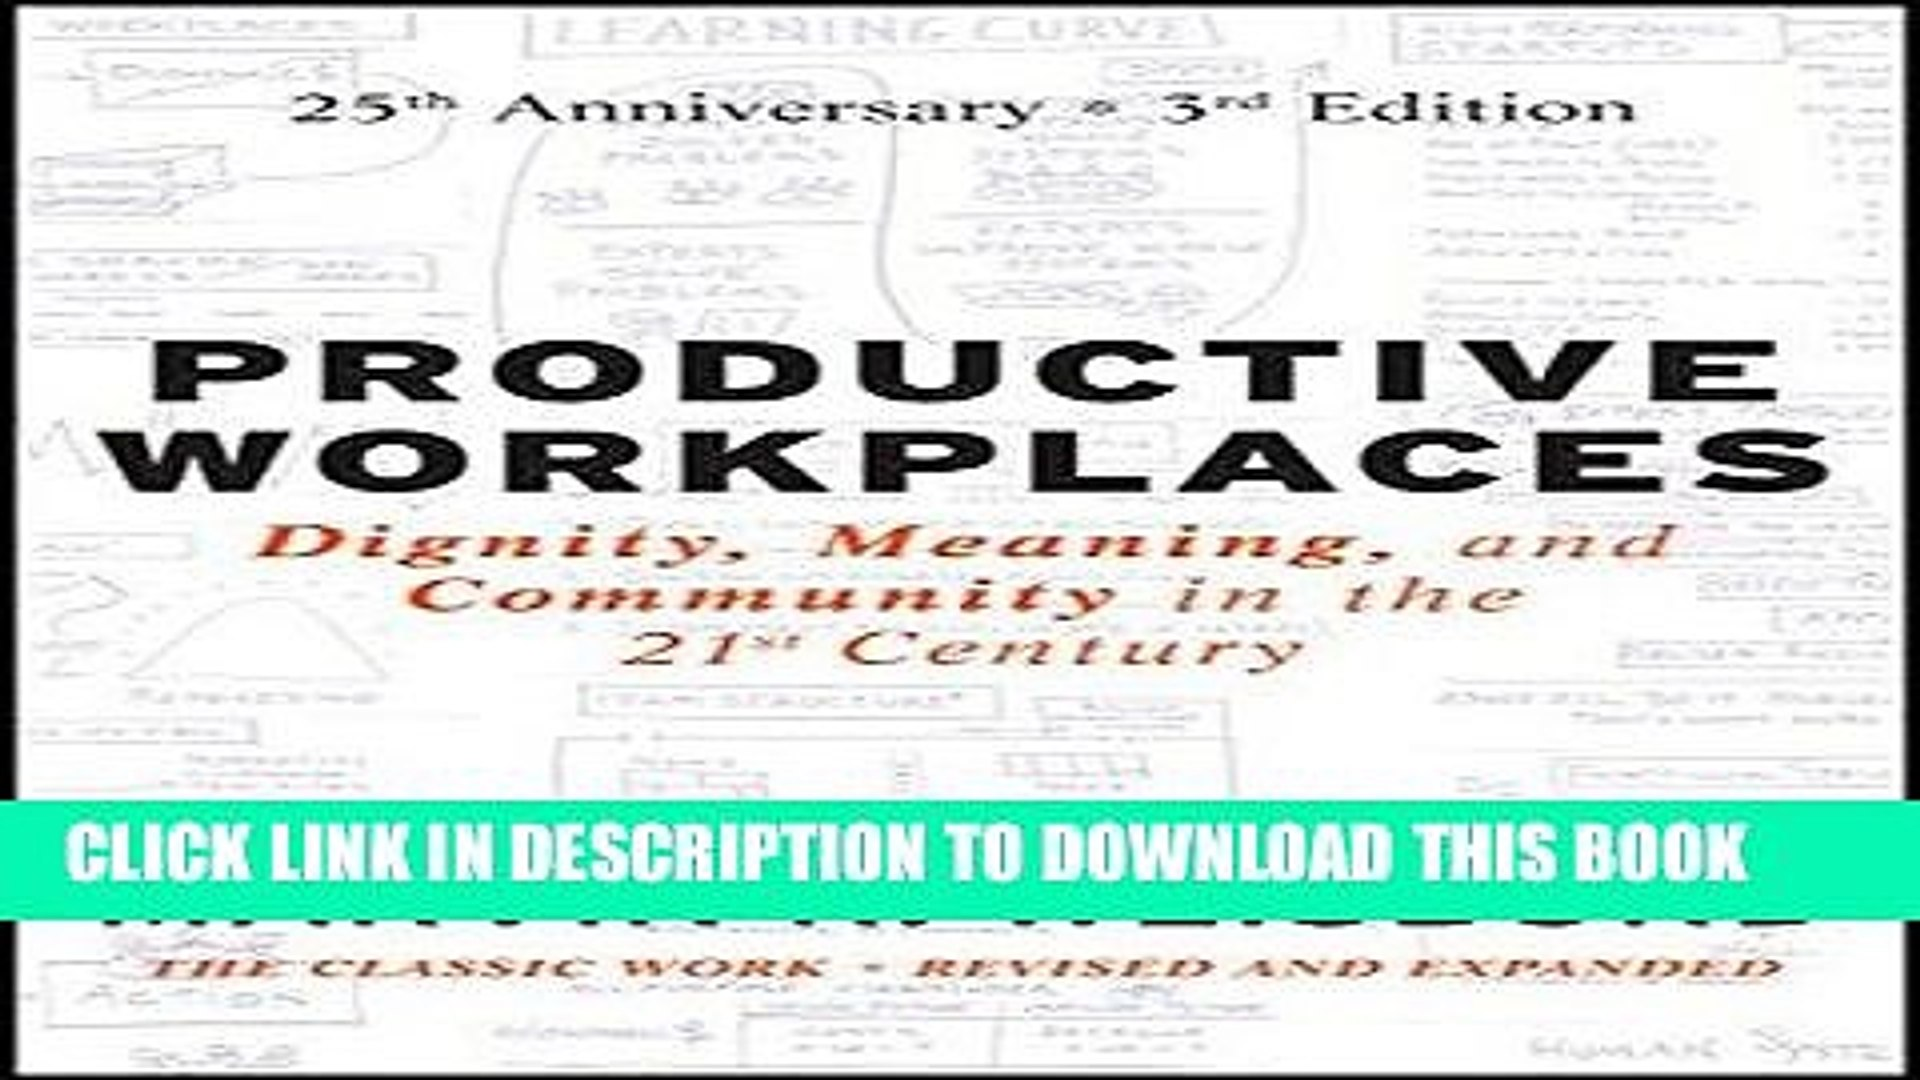 Productive Workplaces: Dignity, Meaning, and Community in the 21st Century- Marvin Weisbord